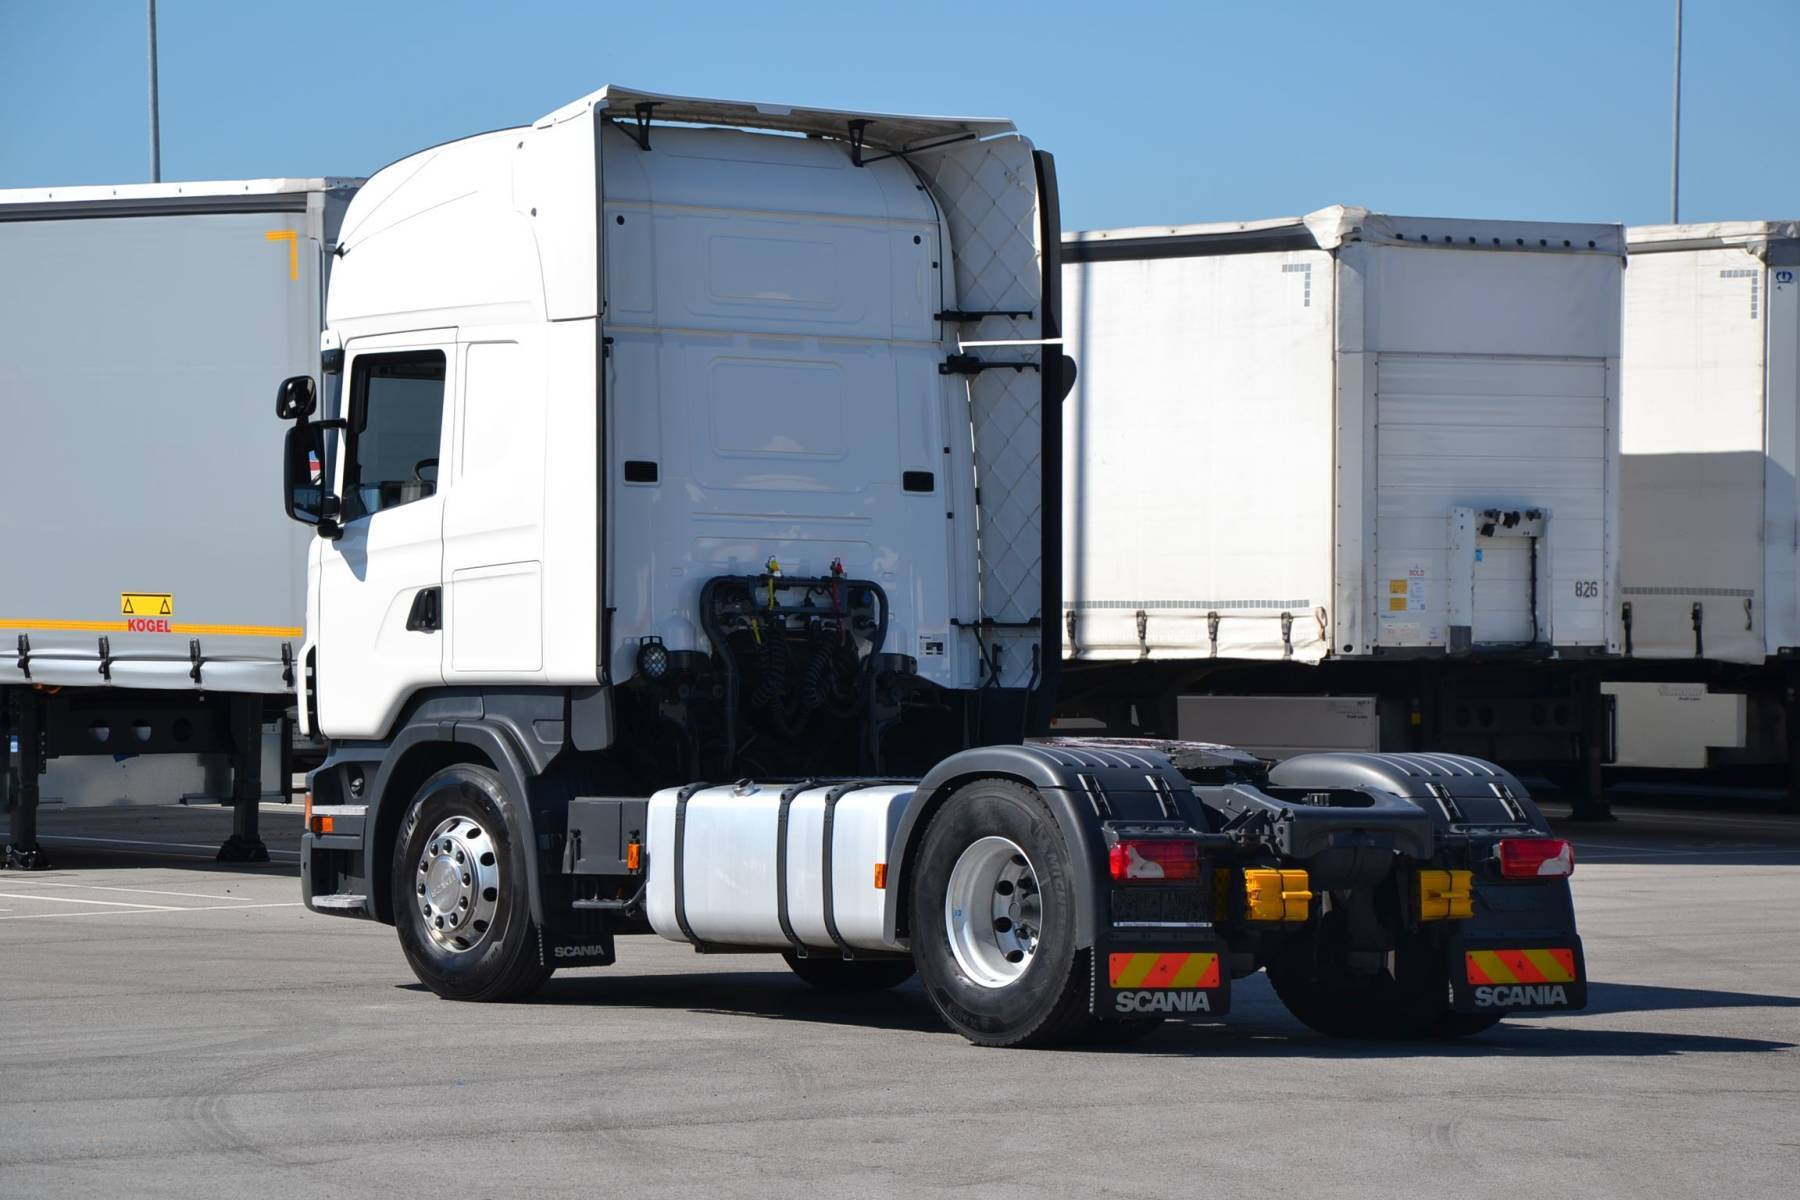 Scania HGV tractor unit R420 - used 1